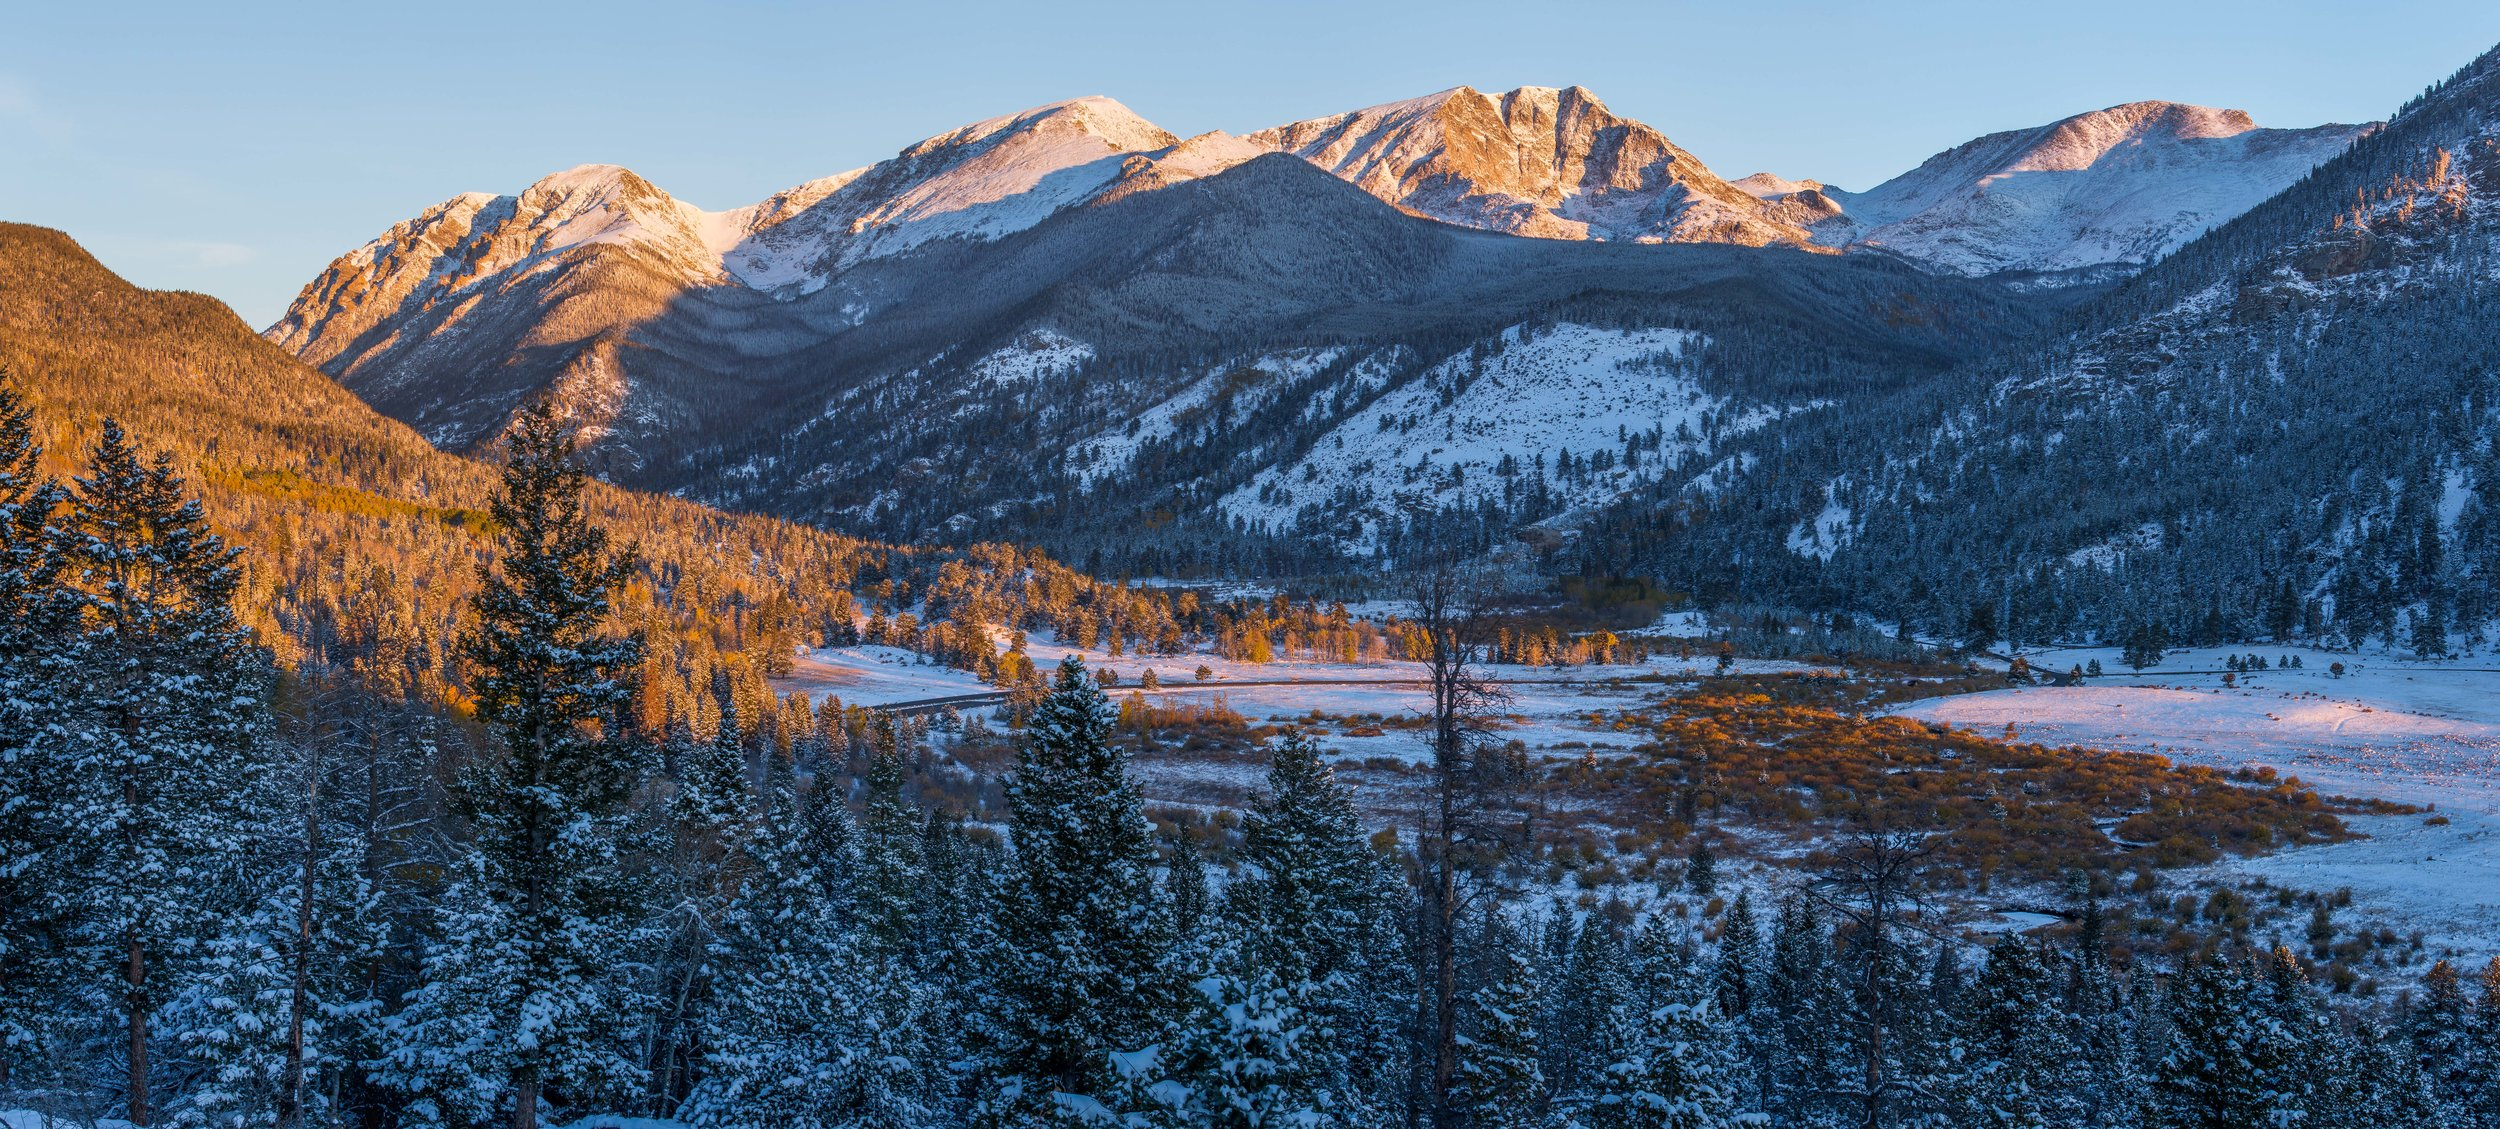 Crystal Valley, Rocky Mountain National Park  © Andrew Lockwood 2017